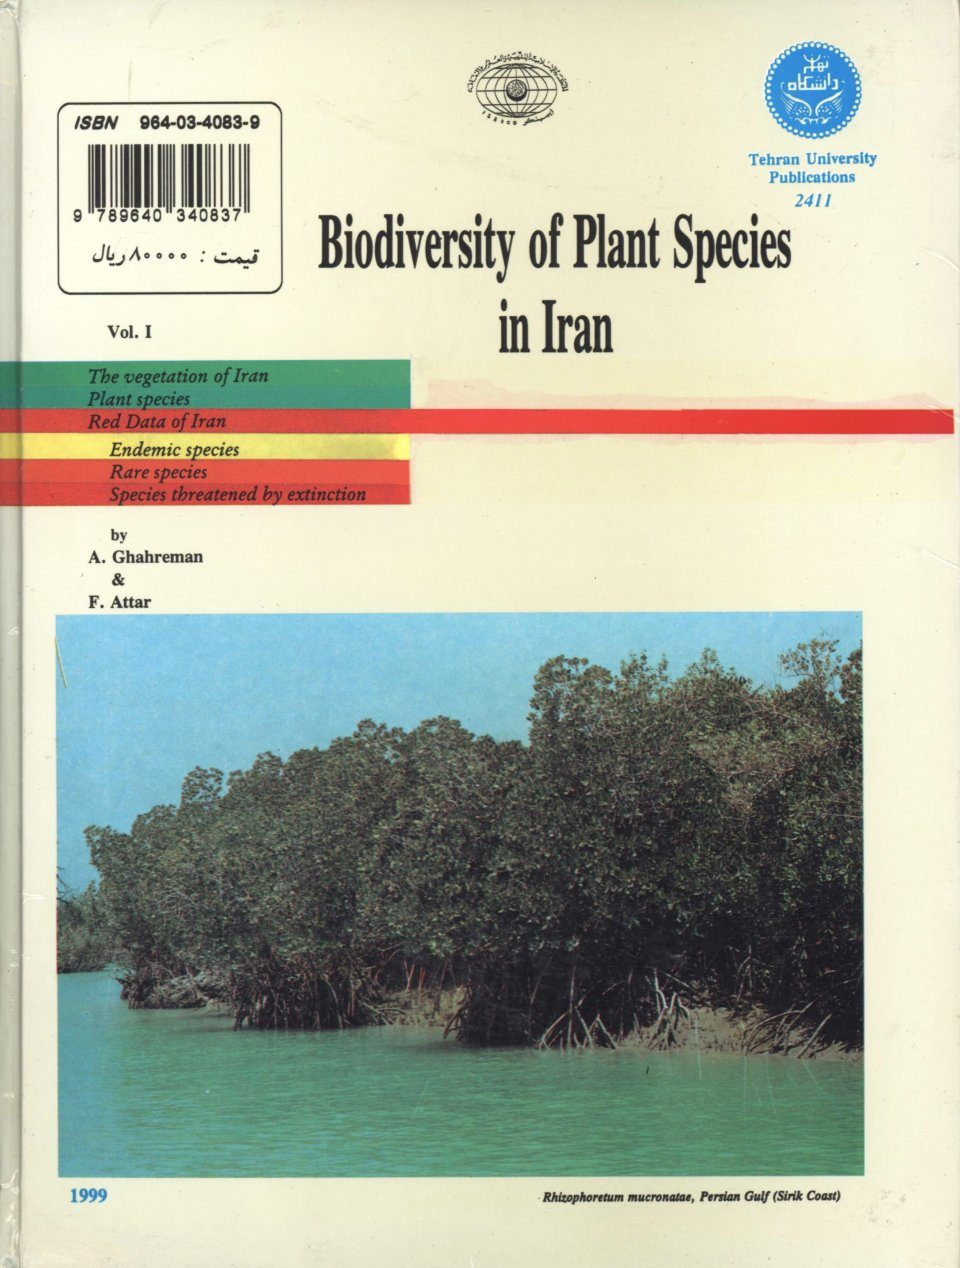 Biodiversity of Plant Species in Iran, Volume 1